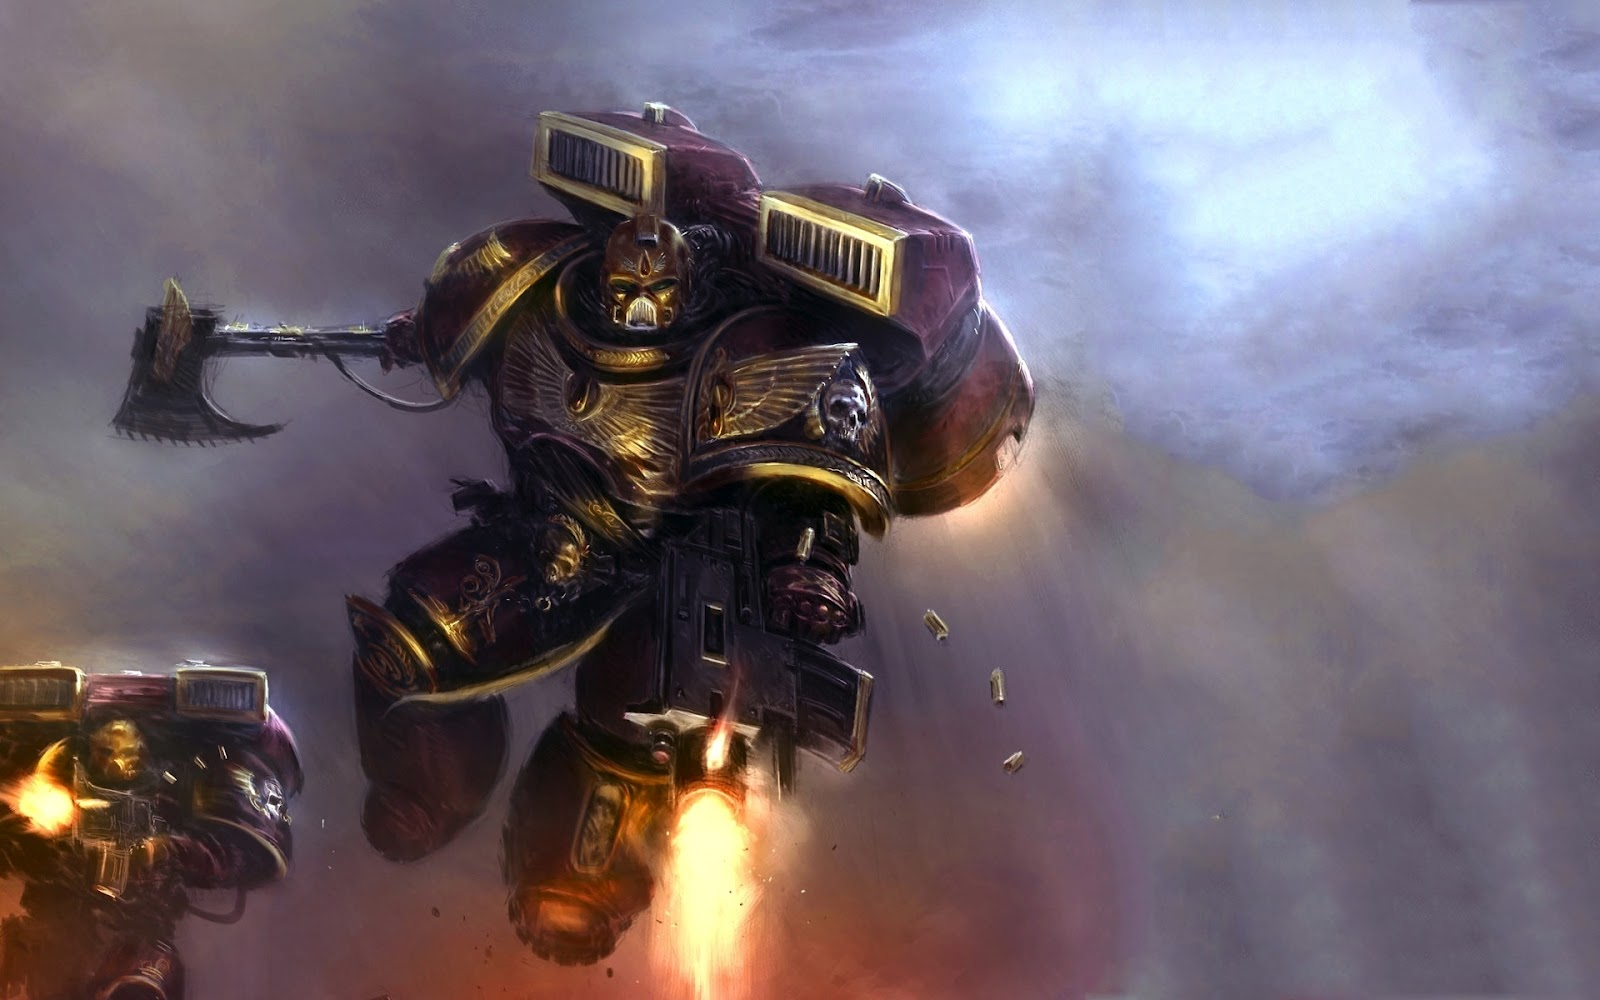 Warhammer 40k death company wallpaper -  Let The Jump Pack Be His Wings And The Roar Of Its Engines A Hymn Of Retribution